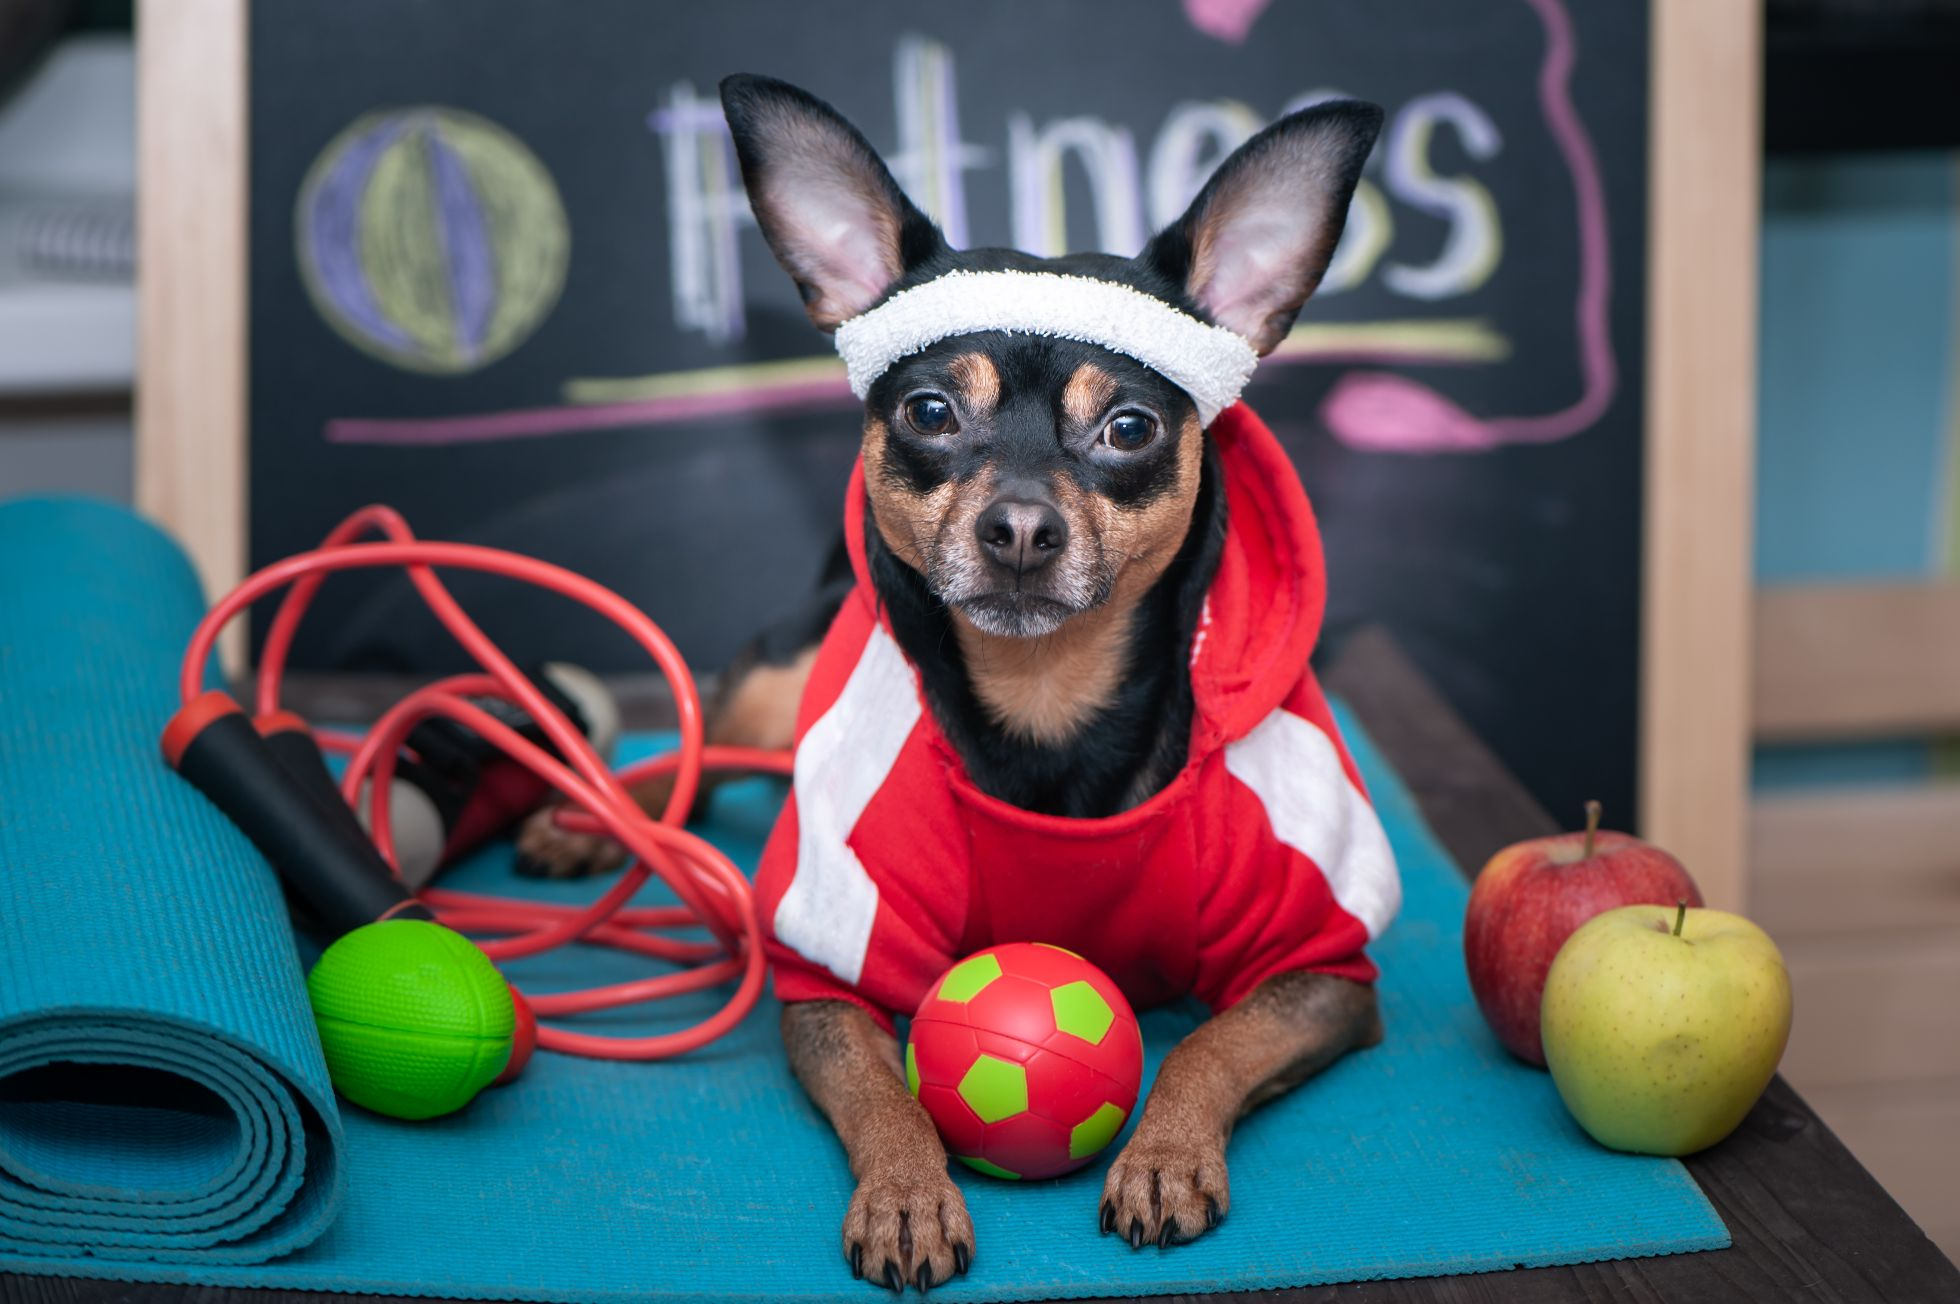 A dog dressed in fitness gear.